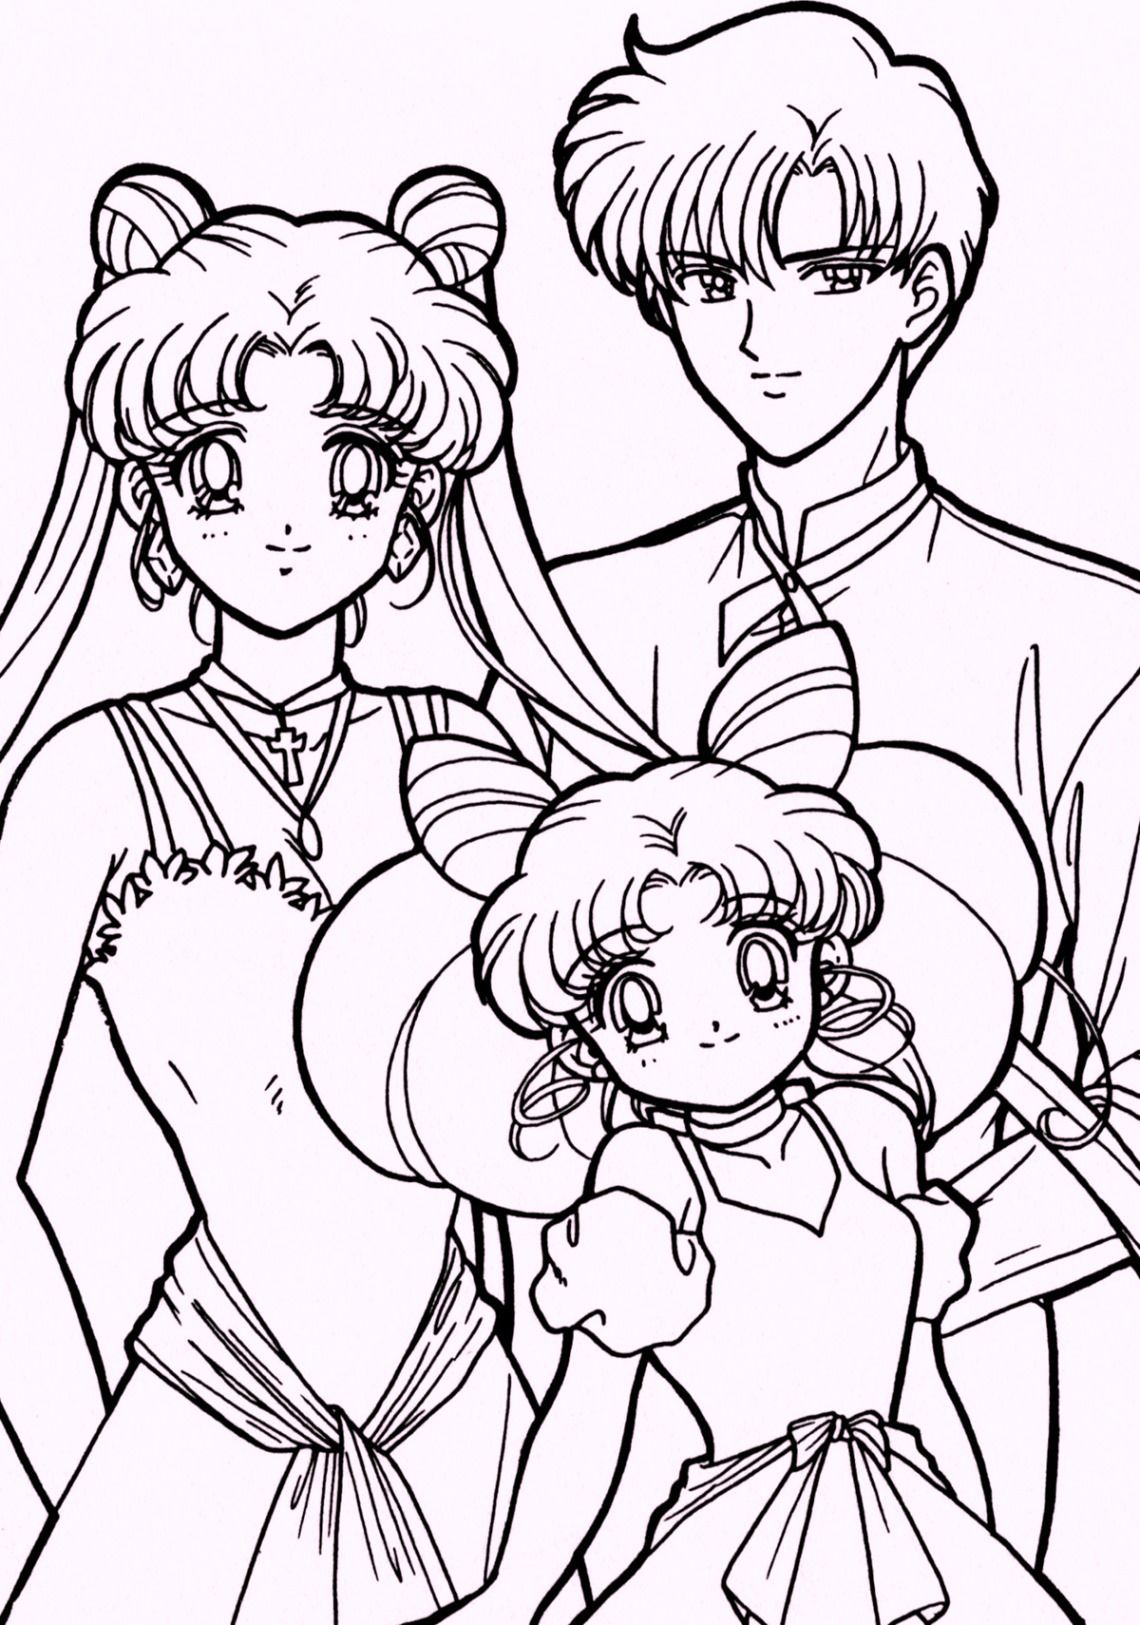 sailor moon drawing book | free download on clipartmag